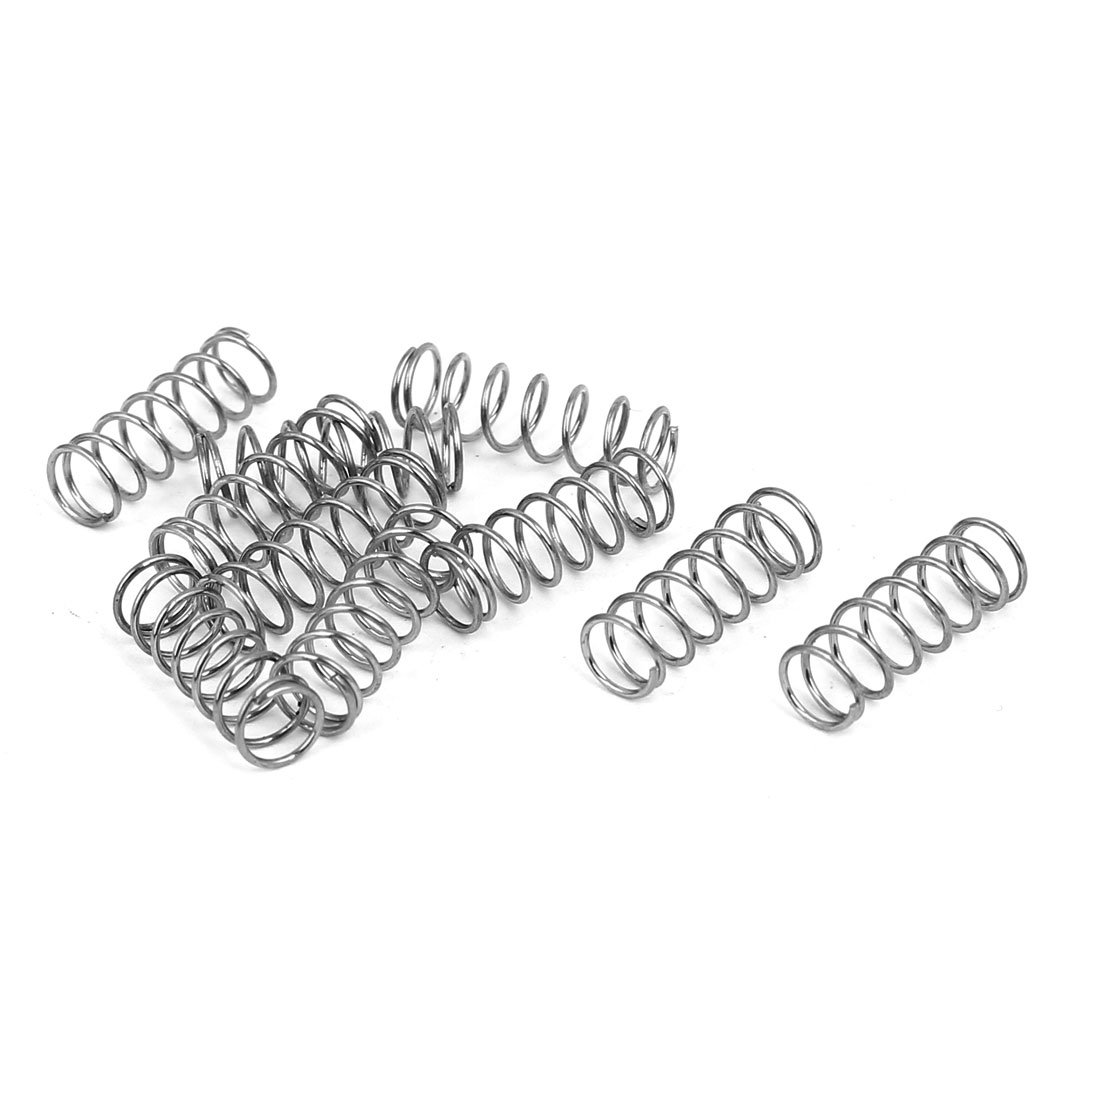 sourcingmap 0.5mmx5mmx15mm 304 Stainless Steel Compression Springs 10pcs